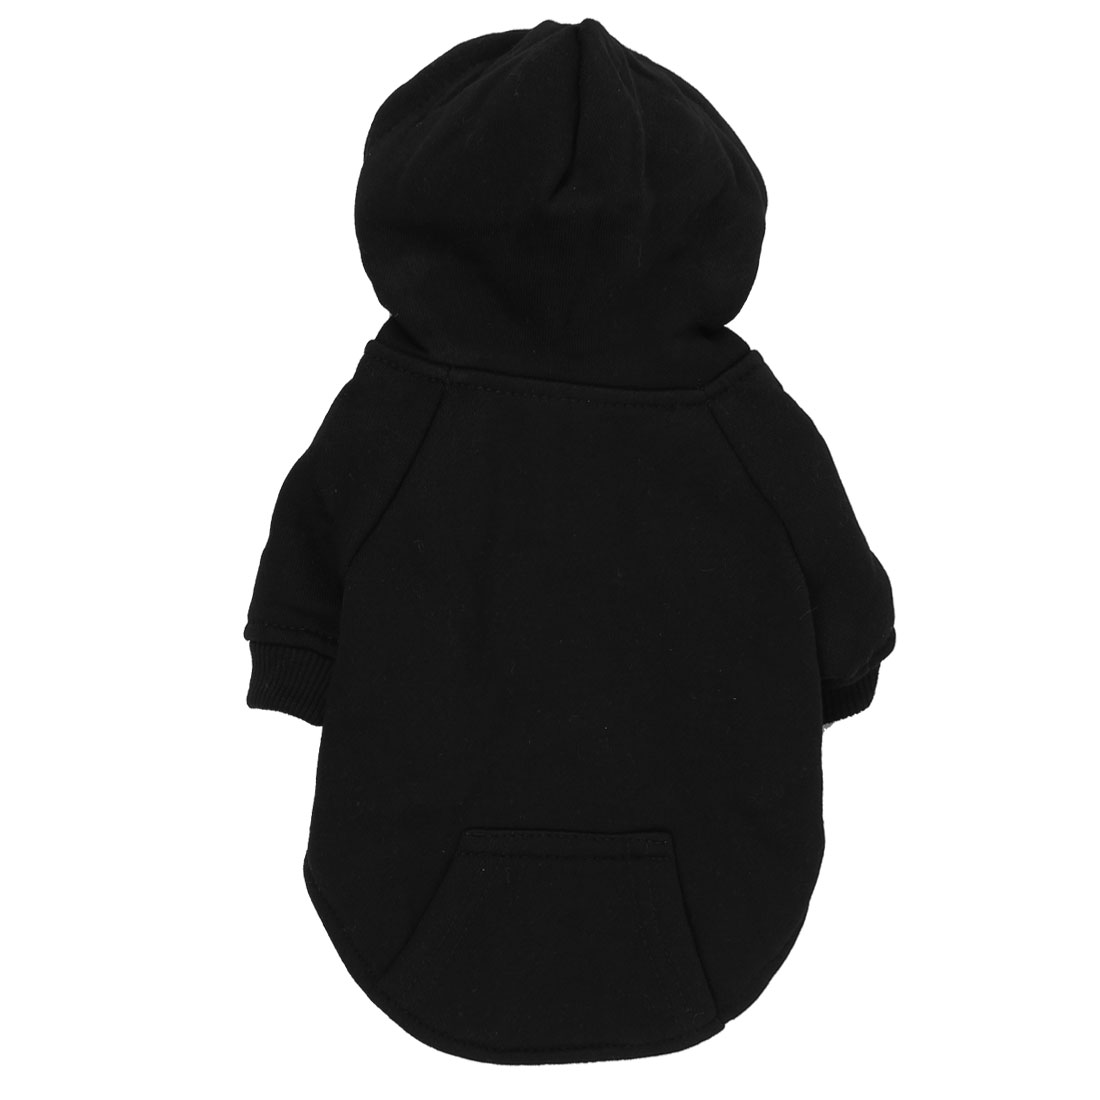 Pet Puppy Warm Hoodie Single Breasted Sleeved Apparel Coat Clothes Black Size S